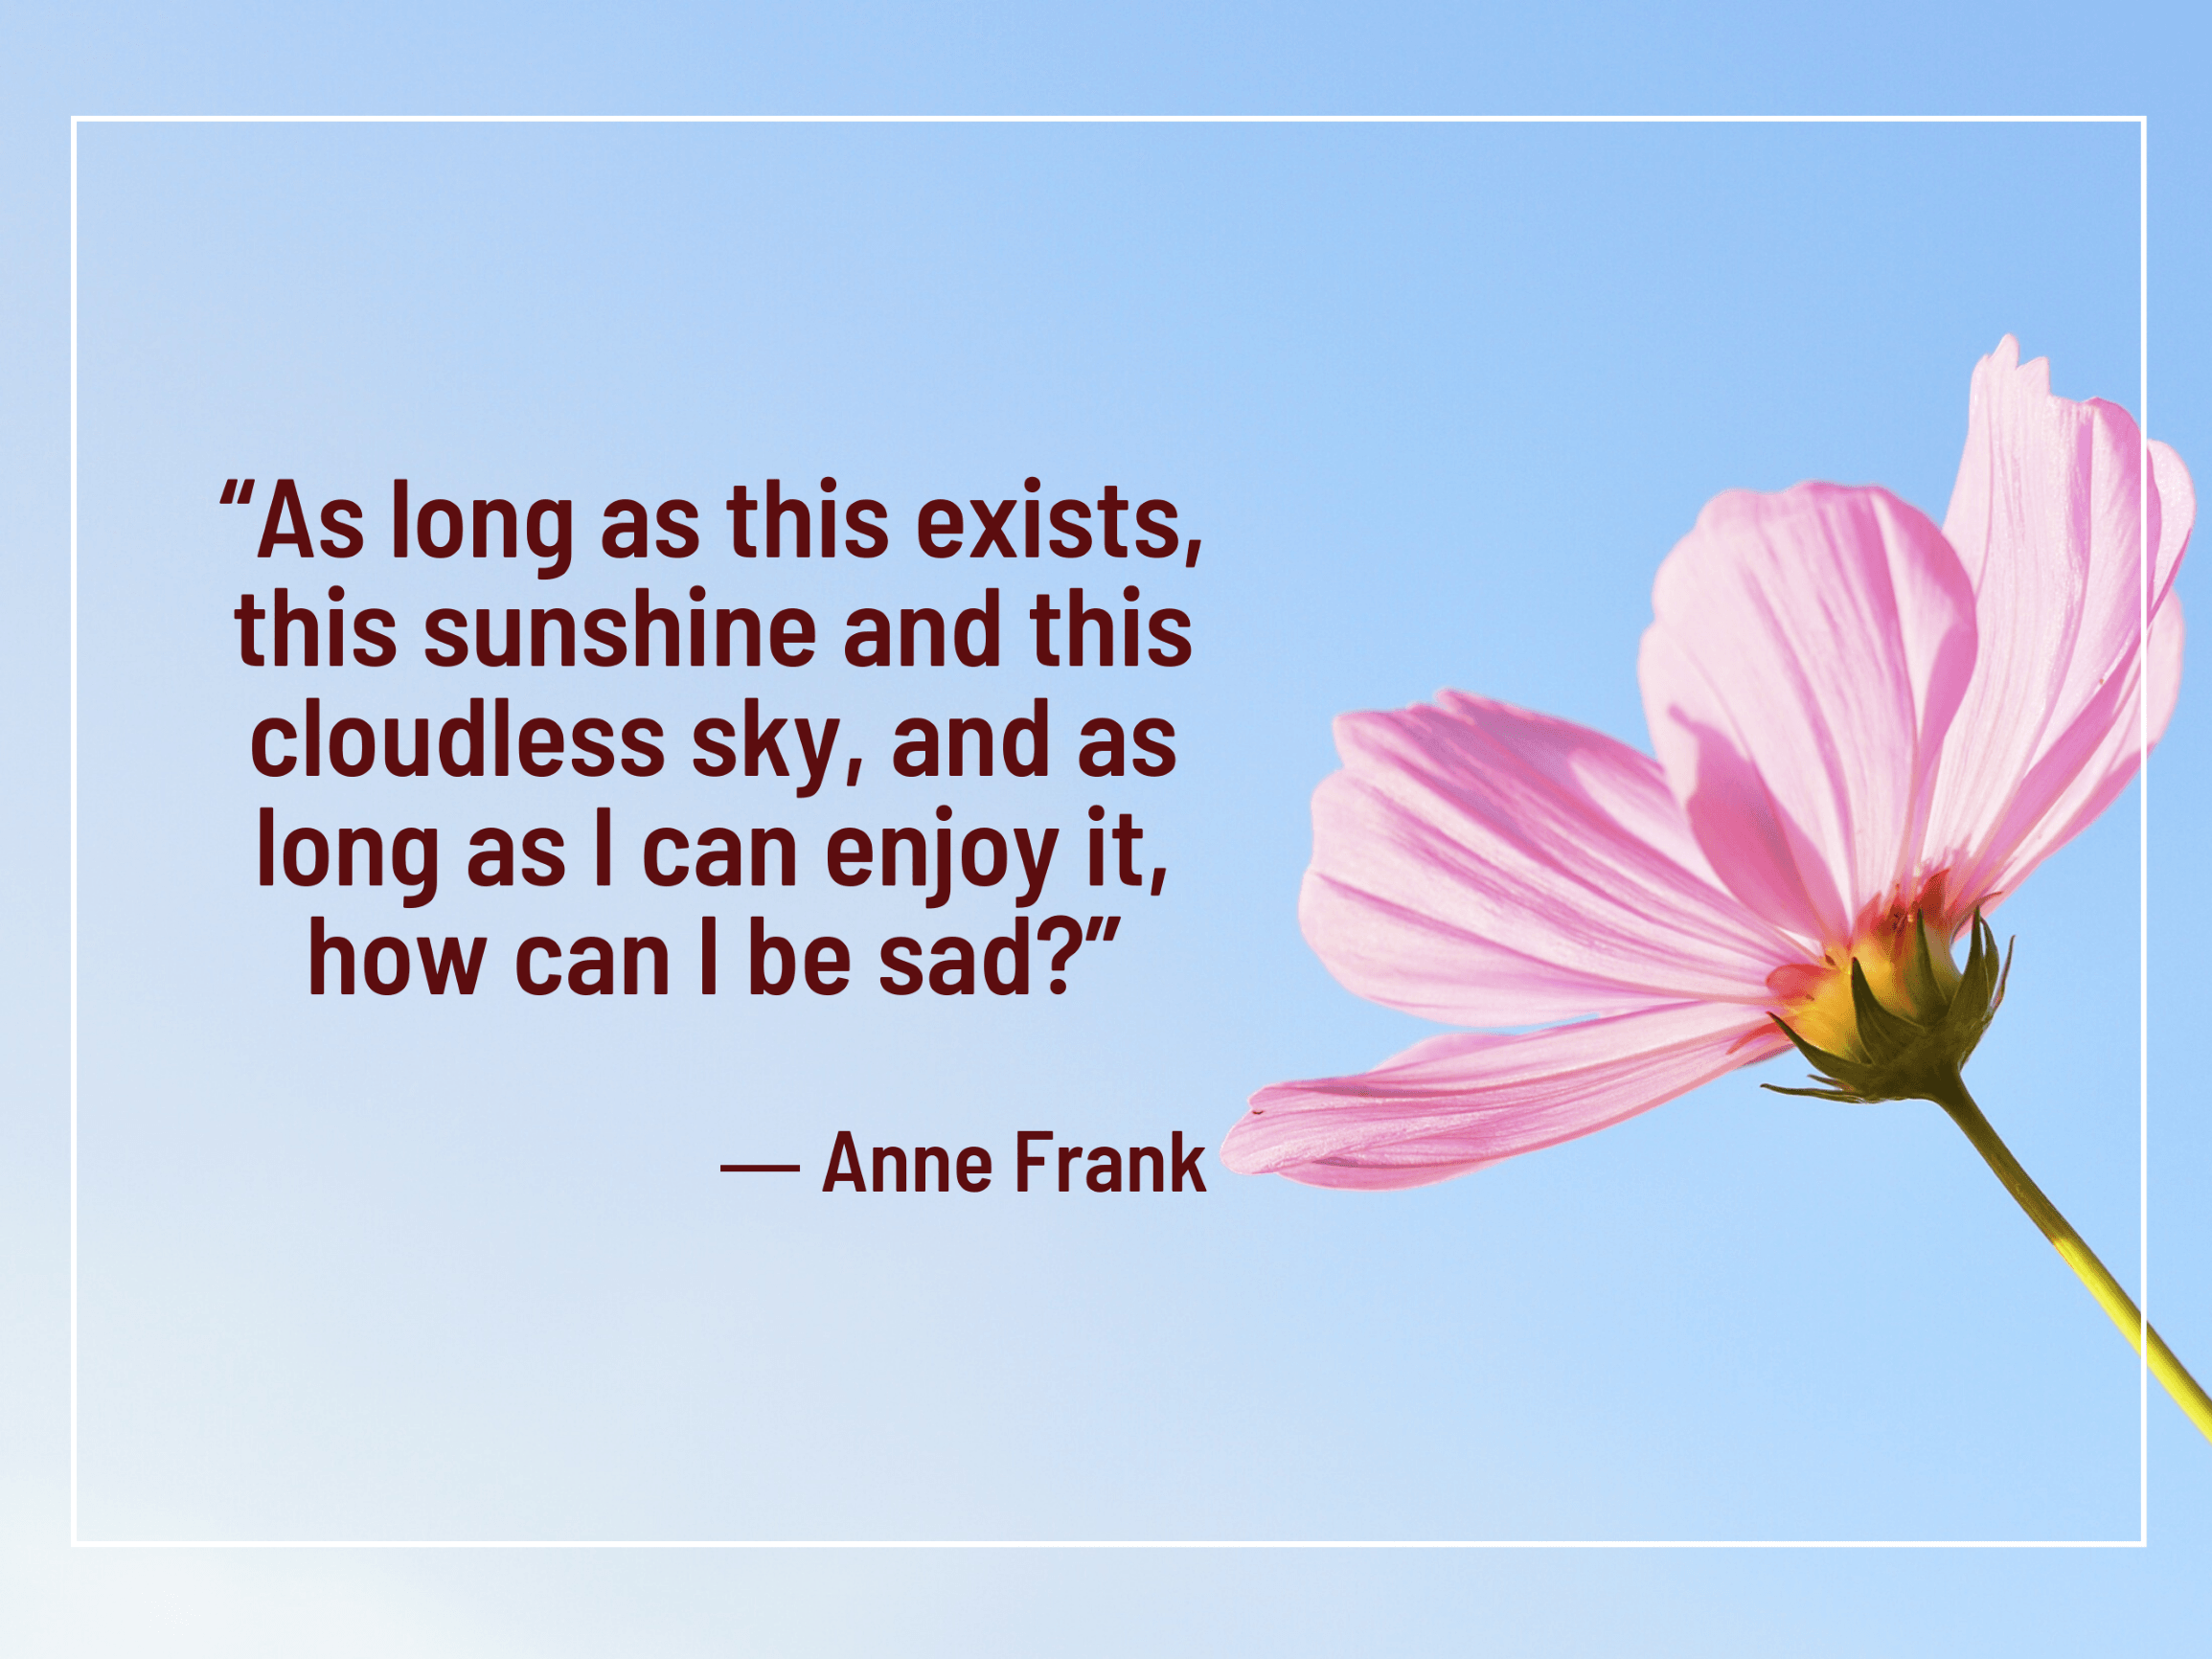 Anne Frank says there's always something to be grateful for